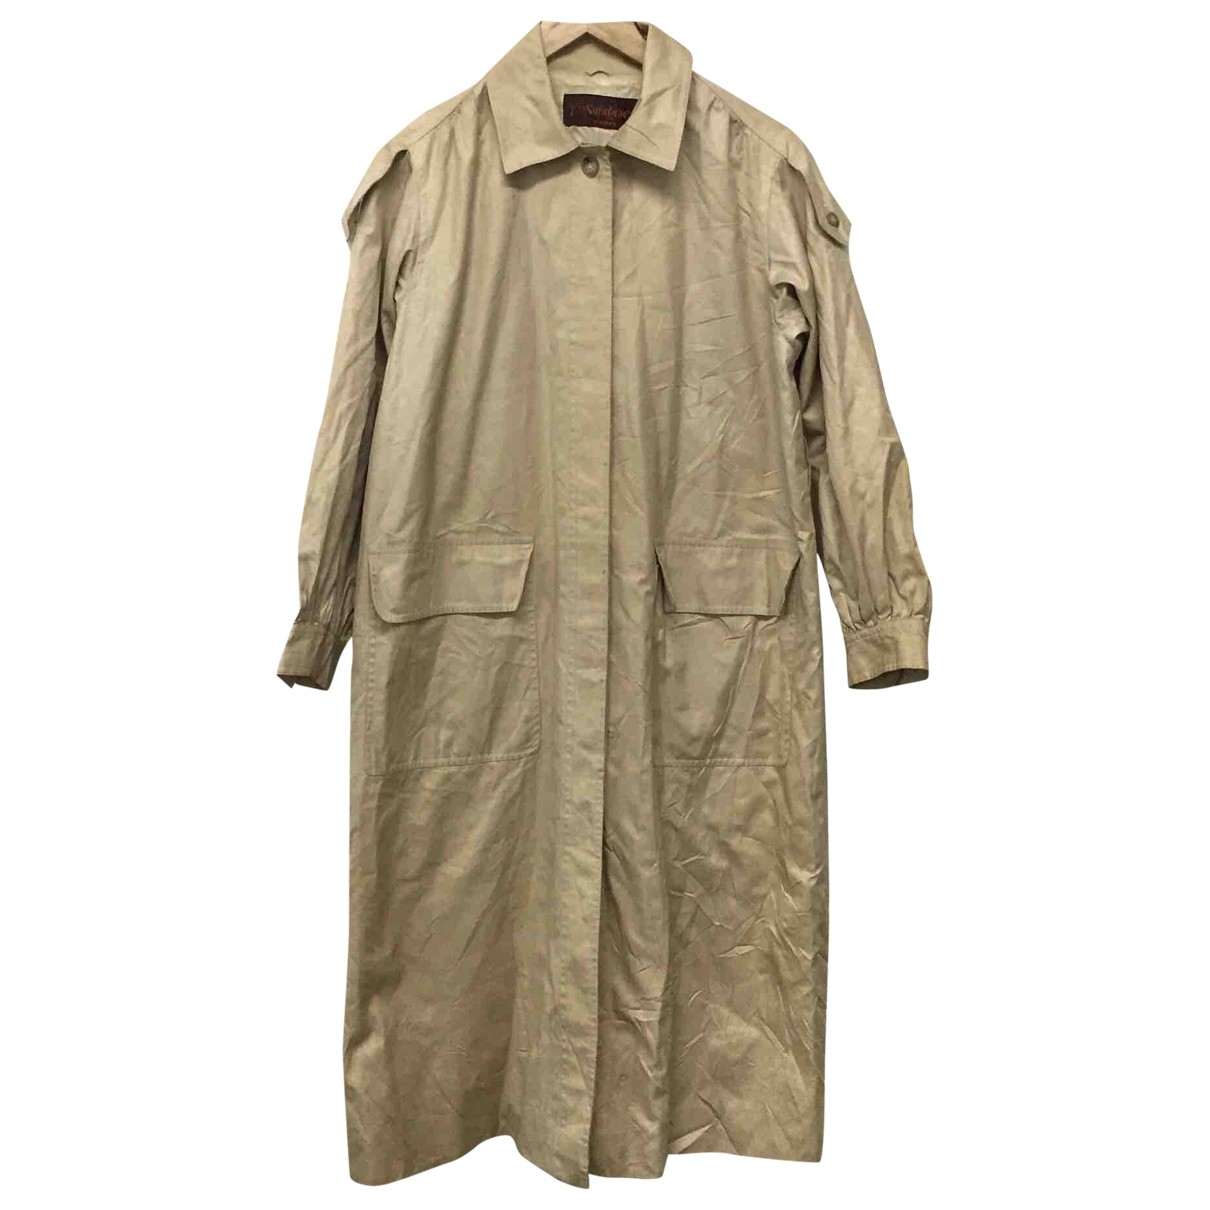 Yves Saint Laurent \N Trench in  Beige Baumwolle